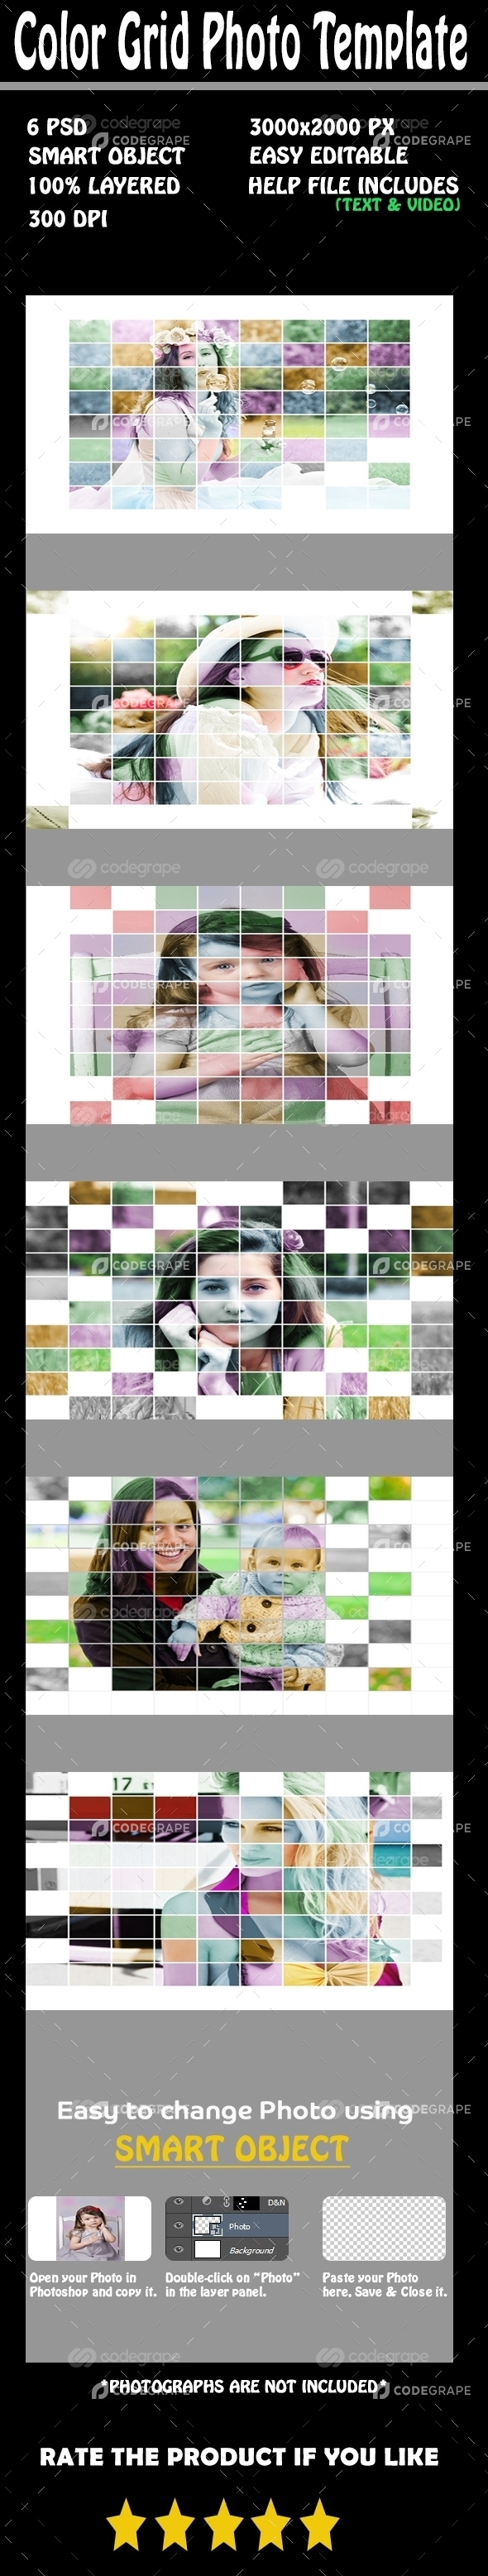 Color Grid Photo Template